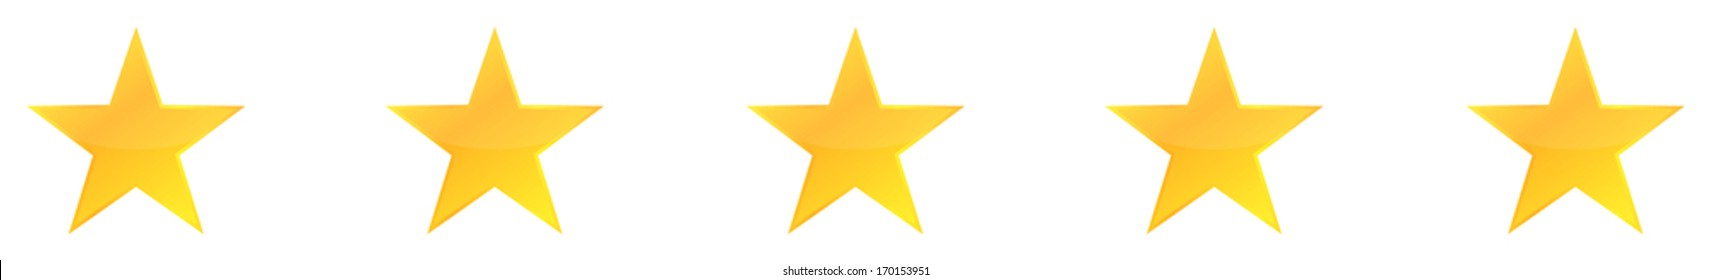 Five Star Premium Quality Product Vector